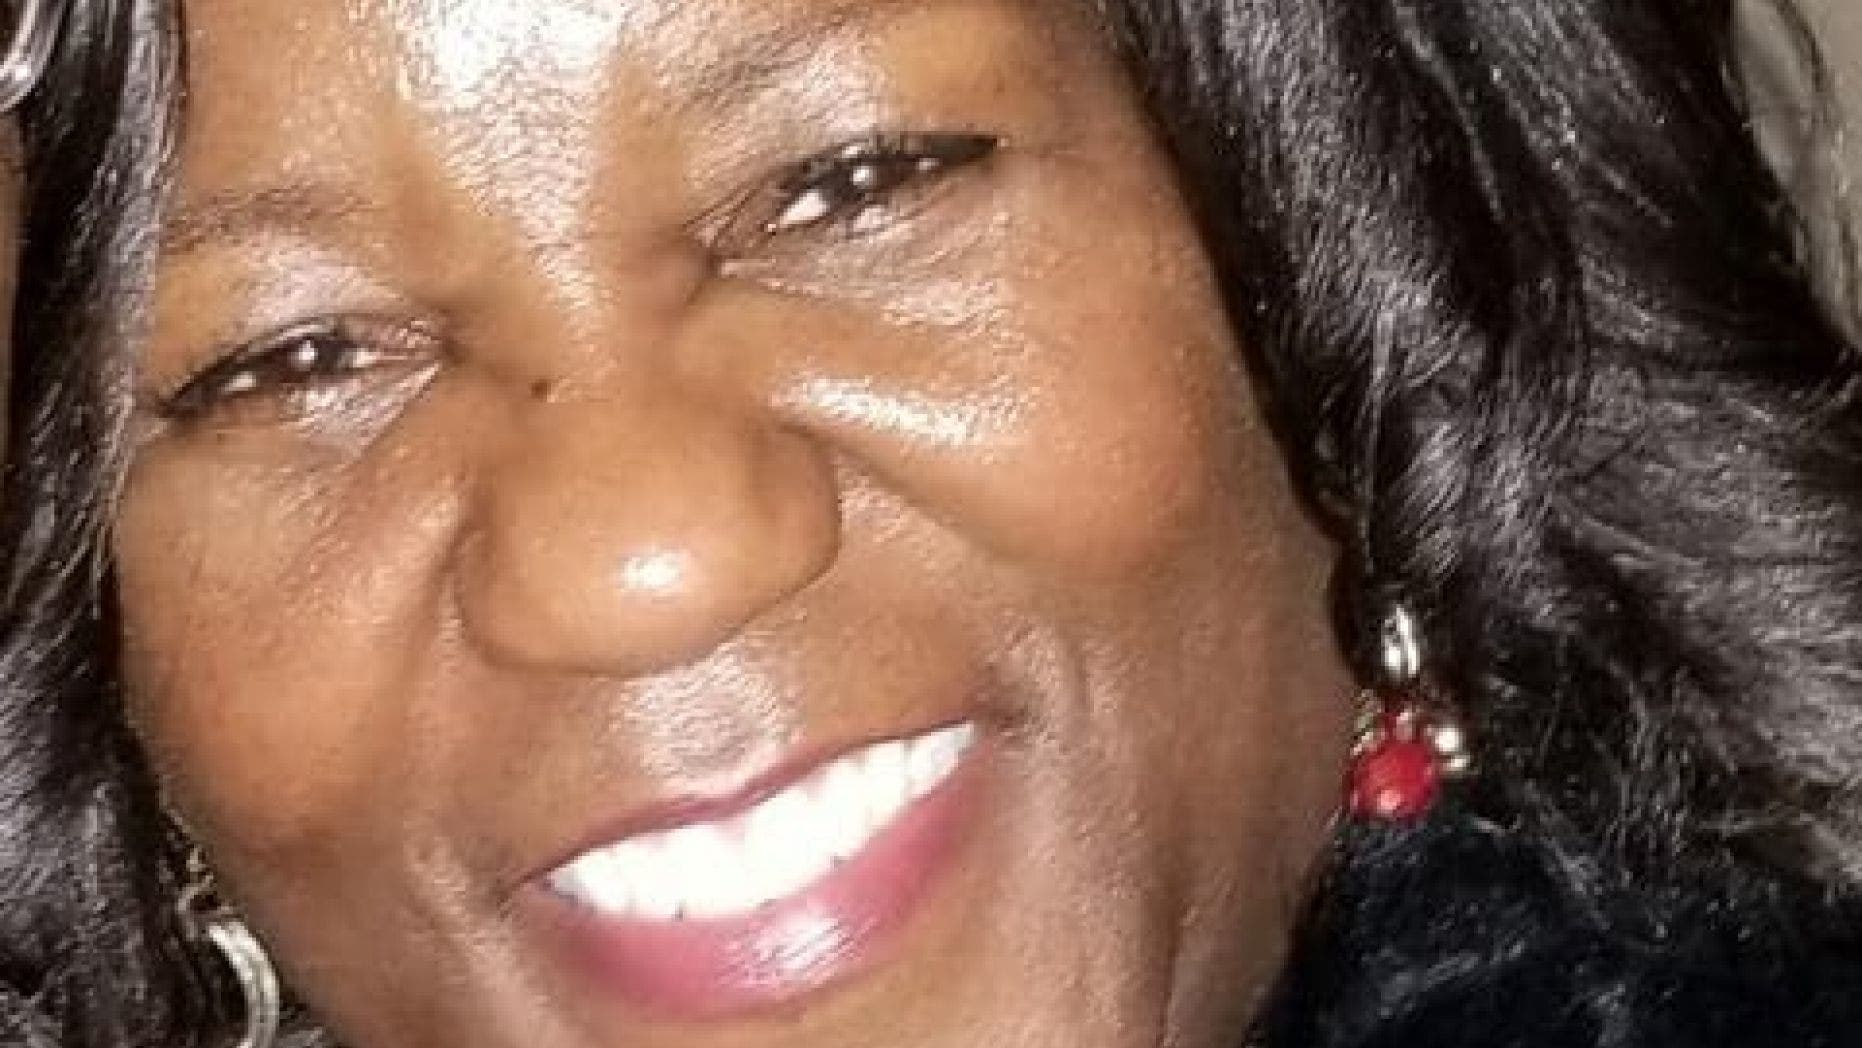 Jacquelyn Smith, 52, wasn't killed by a panhandler in December 2018, but rather by her husband and daughter, Baltimore Police said Sunday.